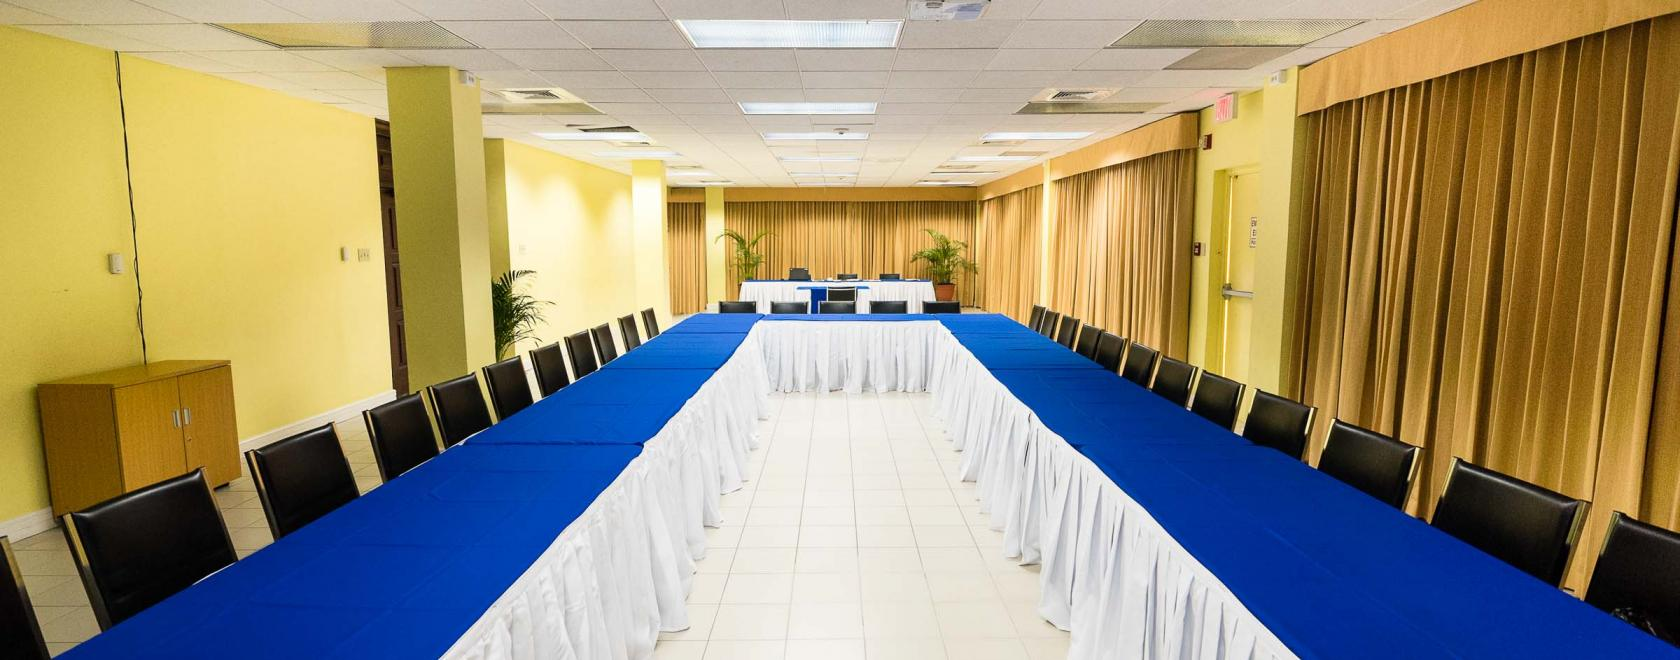 Conference Room lengthways